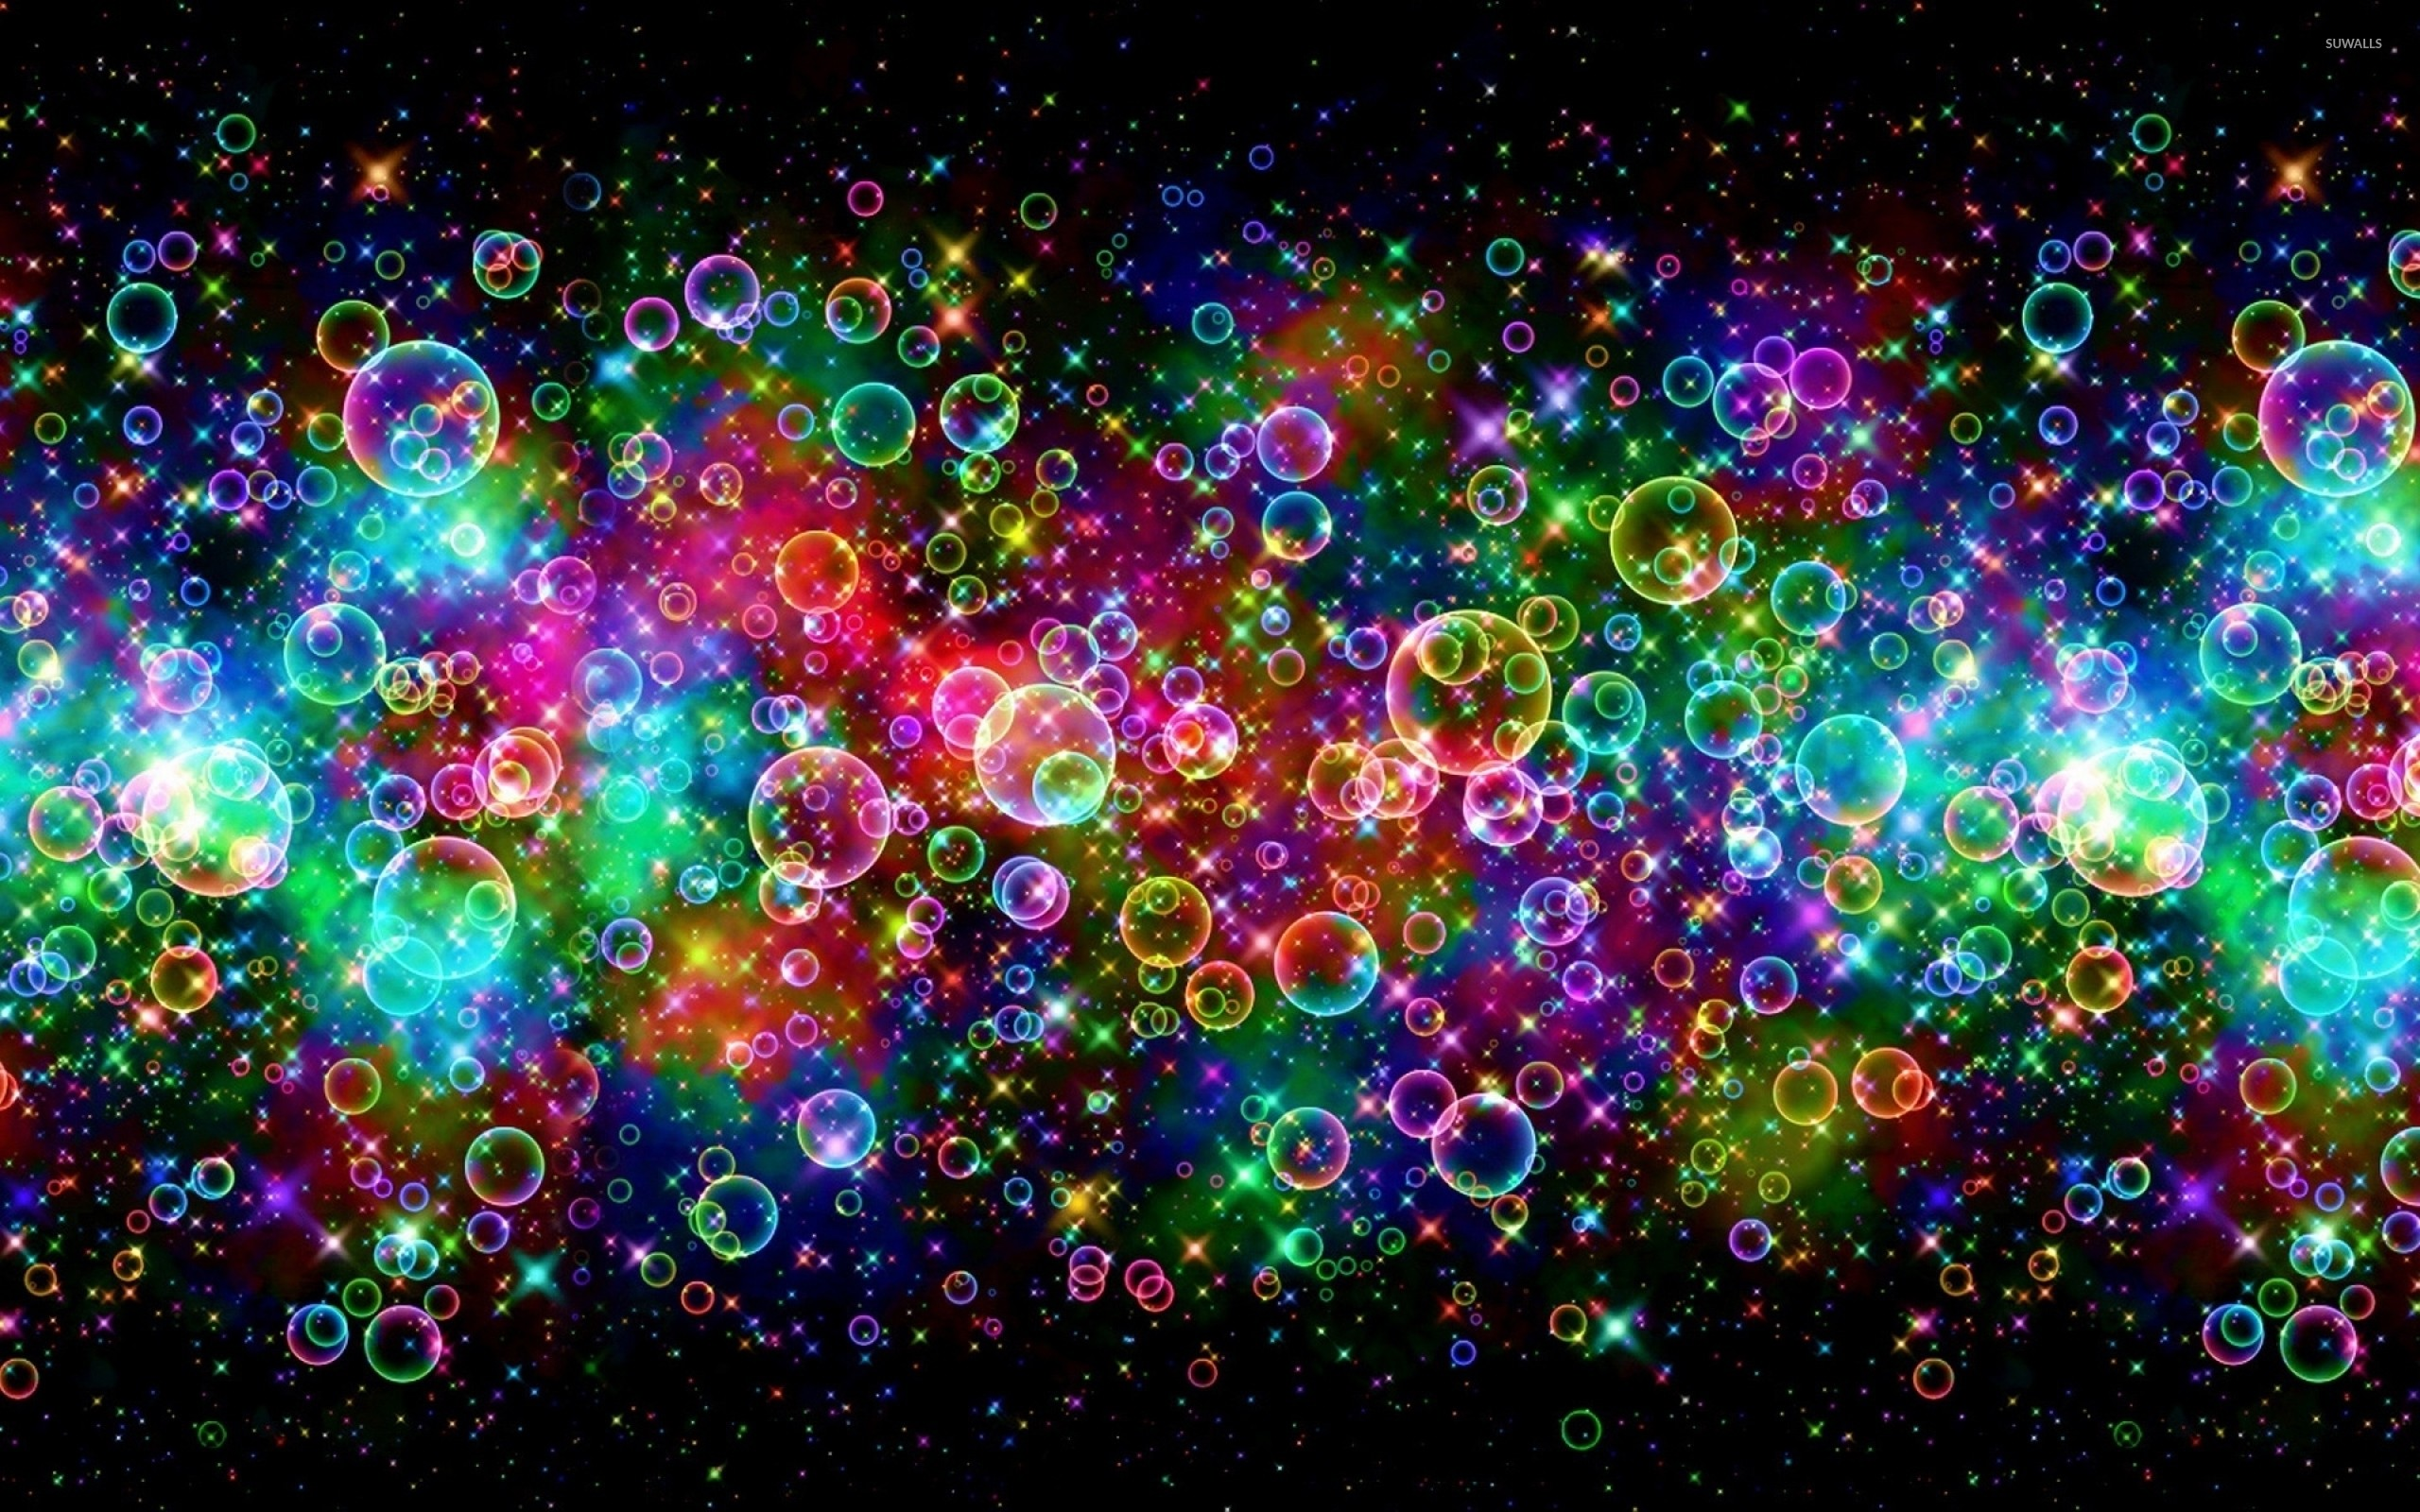 Bright colors reflected on the bubbles wallpaper jpg